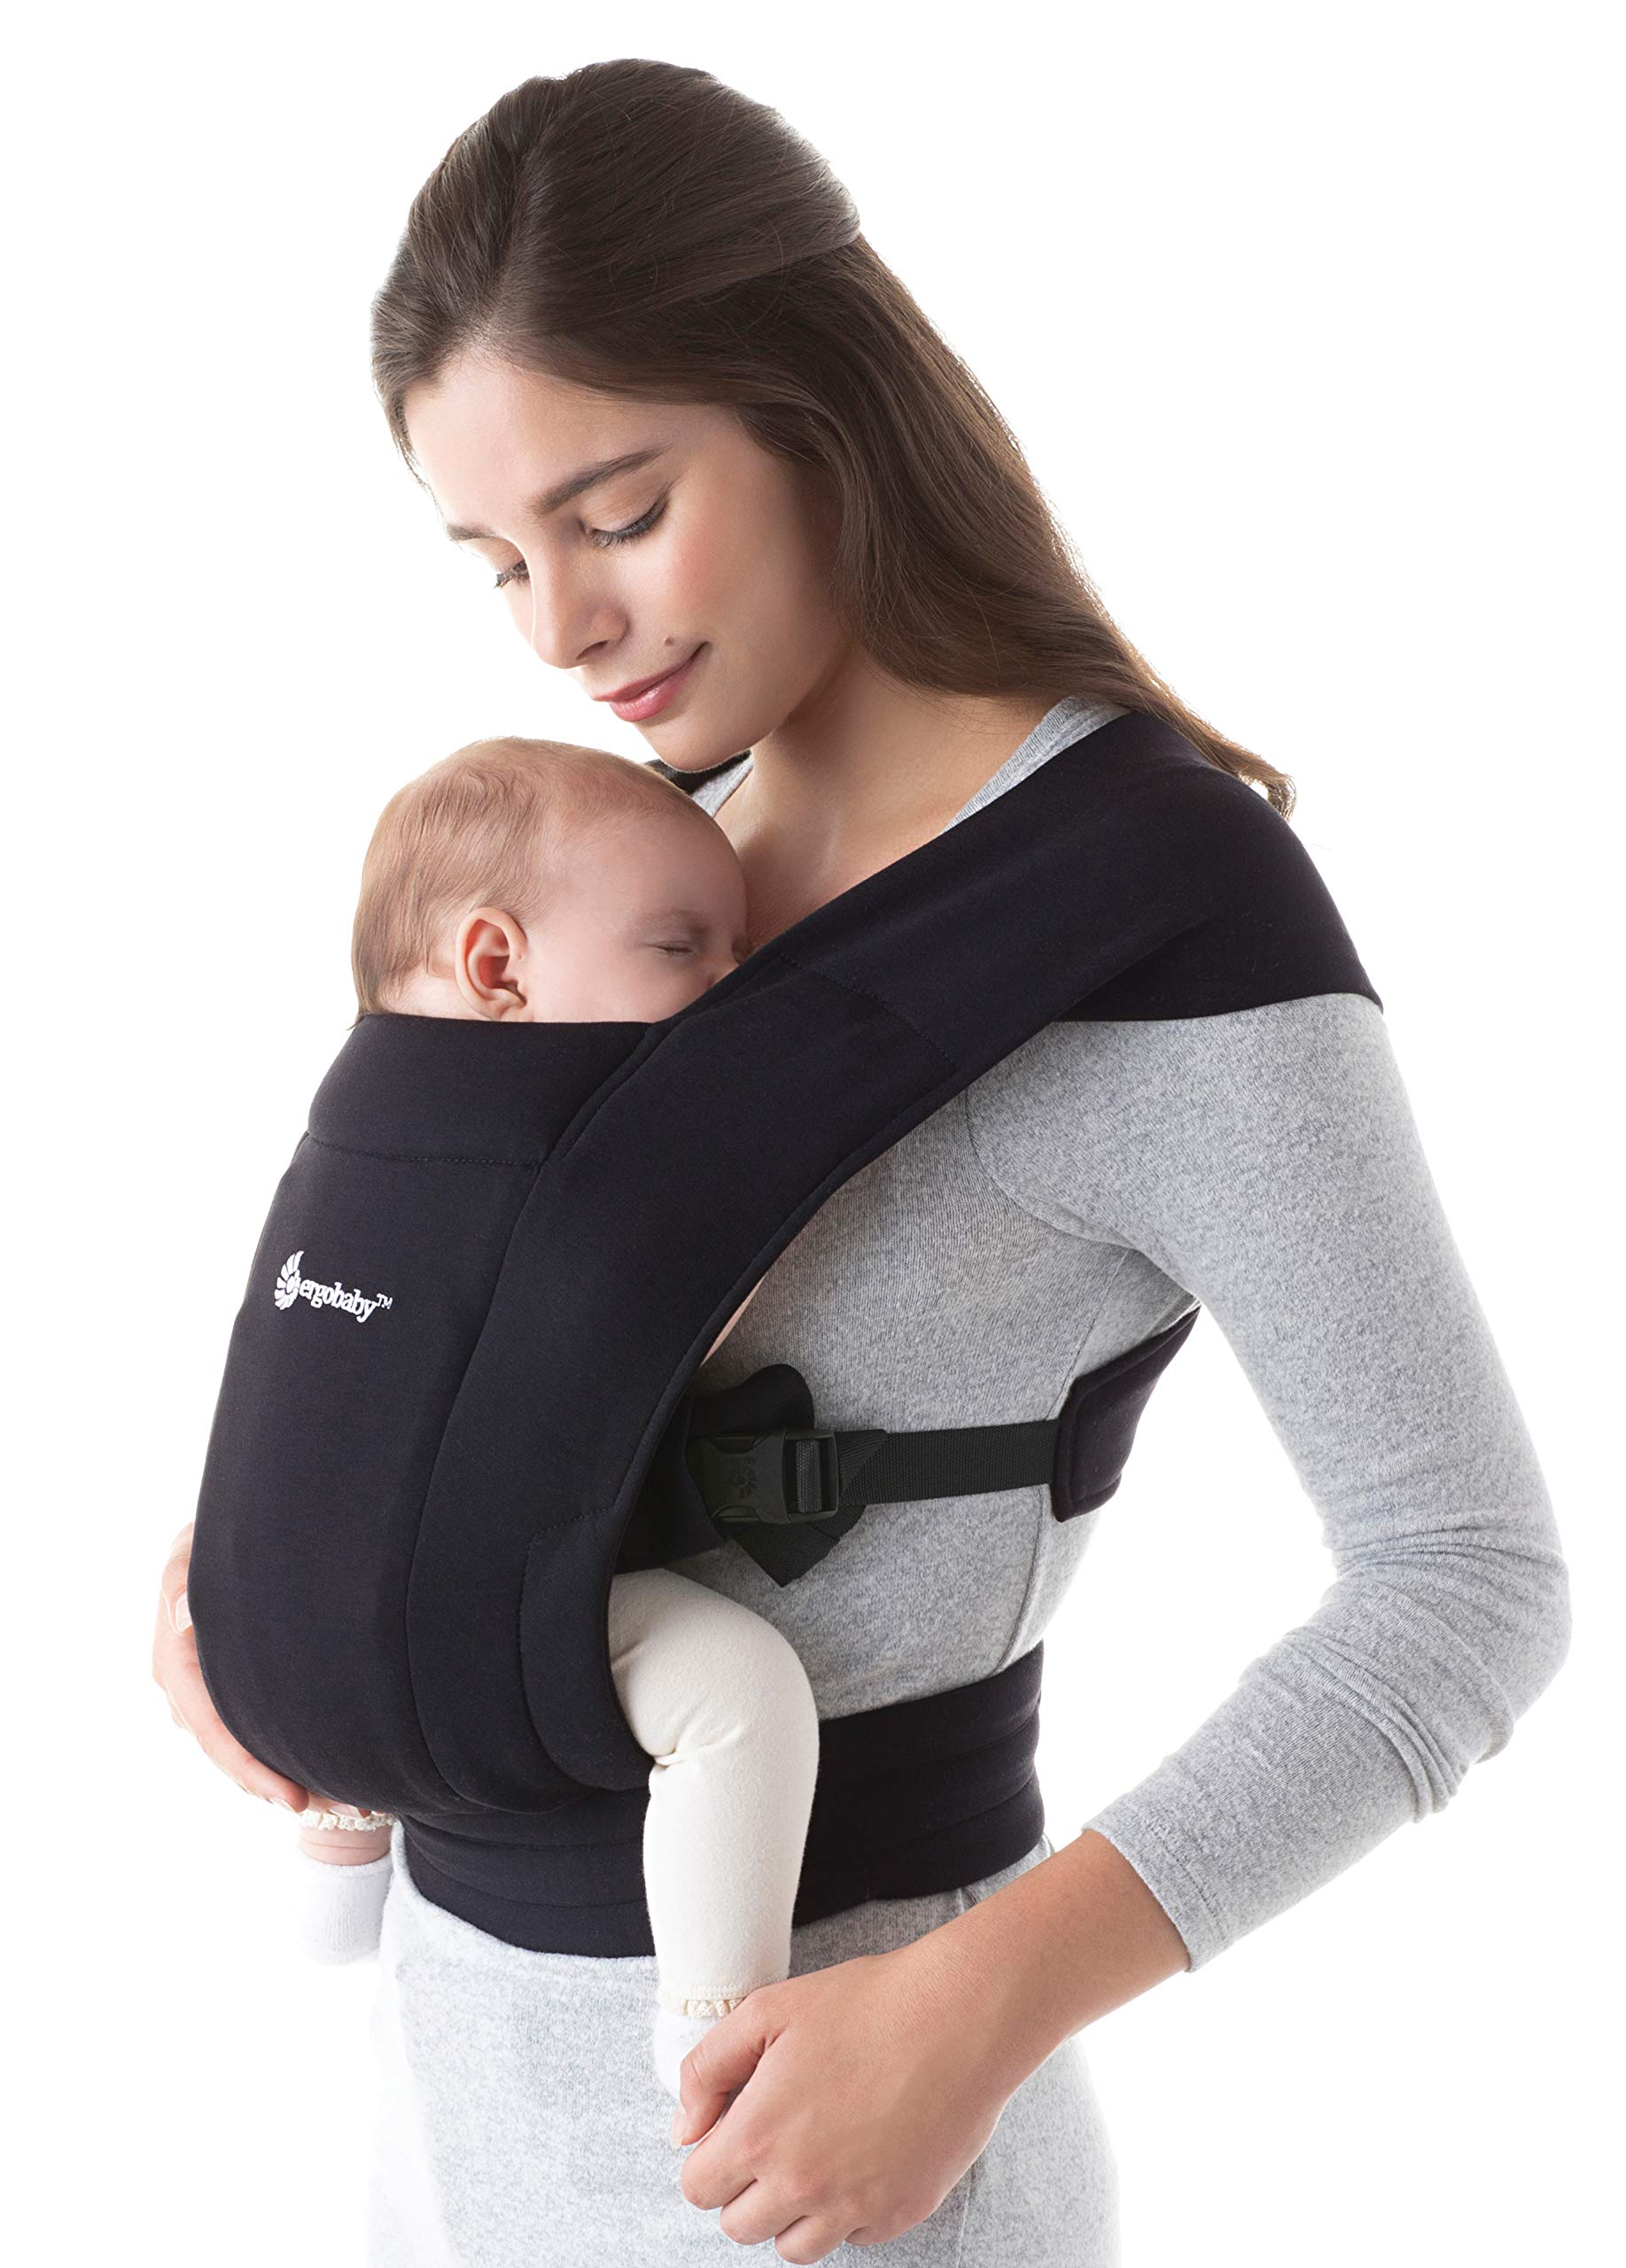 """ErgobabyEmbraceBaby Carrier for Newborns from Birth with Head Support, Extra Soft and Ergonomic (Pure Black) Ergobaby ERGONOMIC BABY CARRIER FROM BIRTH - Carry your newborn baby (3.2 - 11.3kg) snuggled close to you. The baby carrier supports the ergonomic frog-leg position (""""M"""" shape position) of the baby. NEW - The Ergobaby Embrace 2-position Carrier has been specially developed for newborns and babies. A baby carry system for quick and easy use. ULTRA-LIGHT & SUPER SOFT - Less material against the child and open-sided to allow good air circulation. Made from super soft jersey fabric, Oeko-Tex100 certified. Lightweight carrier (approx. 480g). 1"""